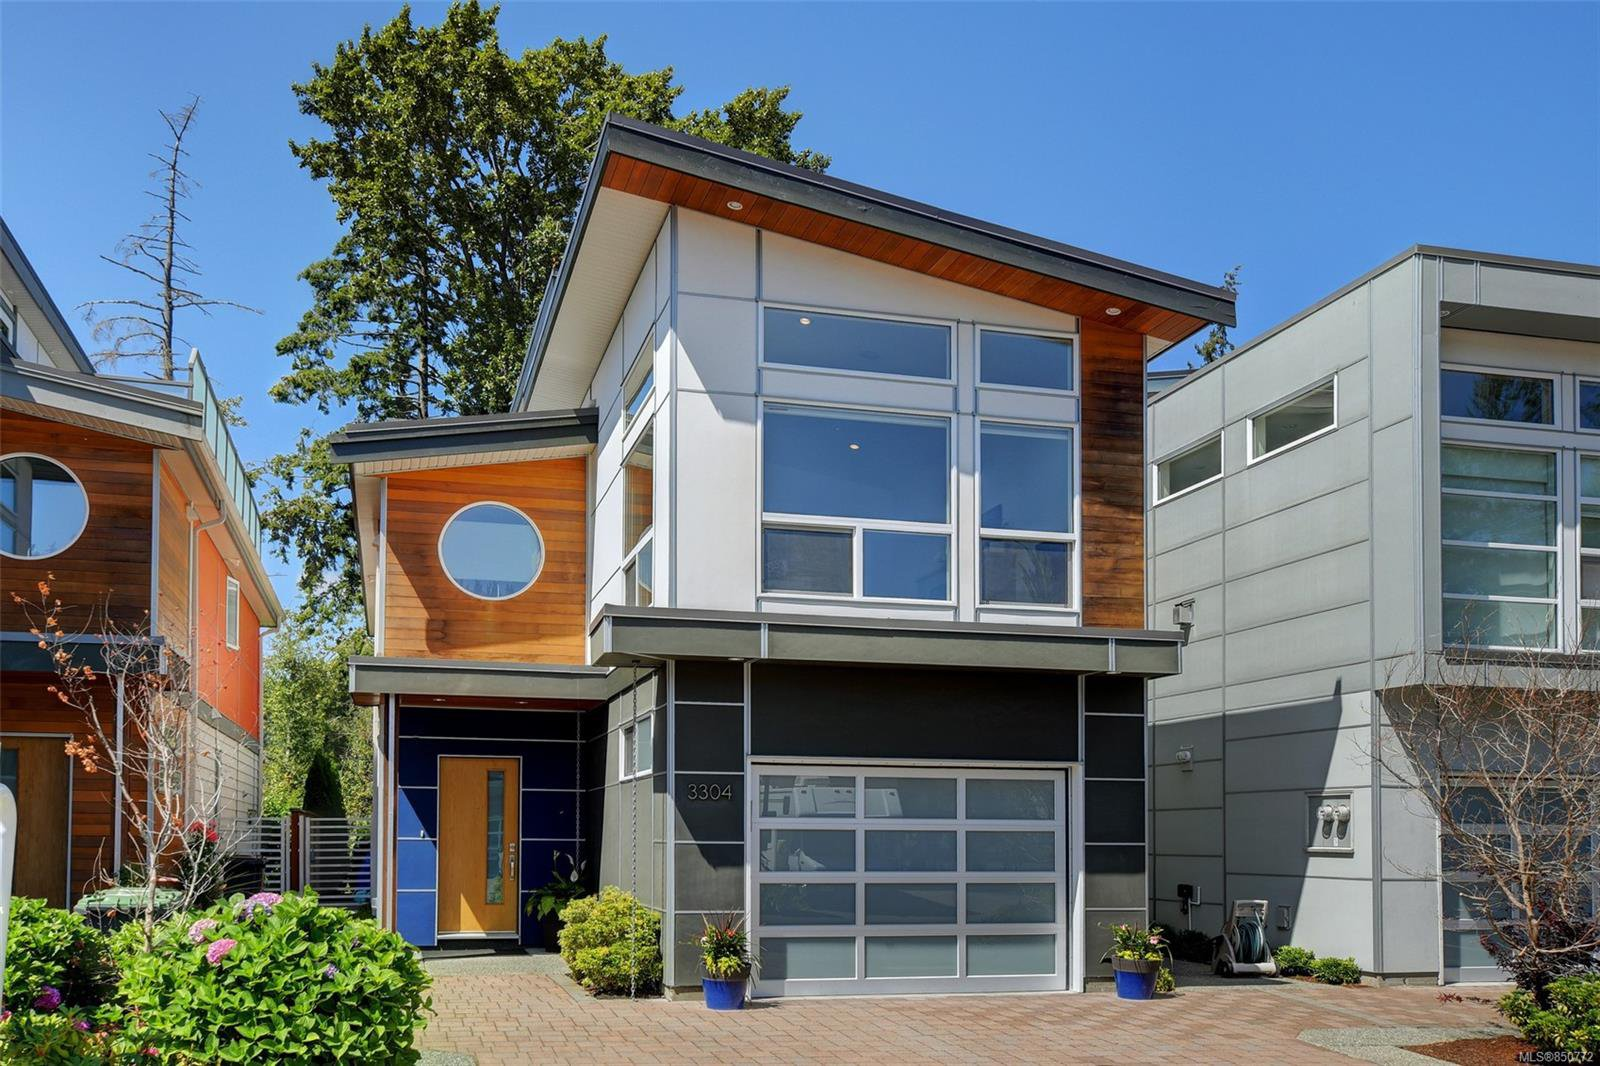 Main Photo: 3304 Radiant Way in : La Happy Valley House for sale (Langford)  : MLS®# 850772